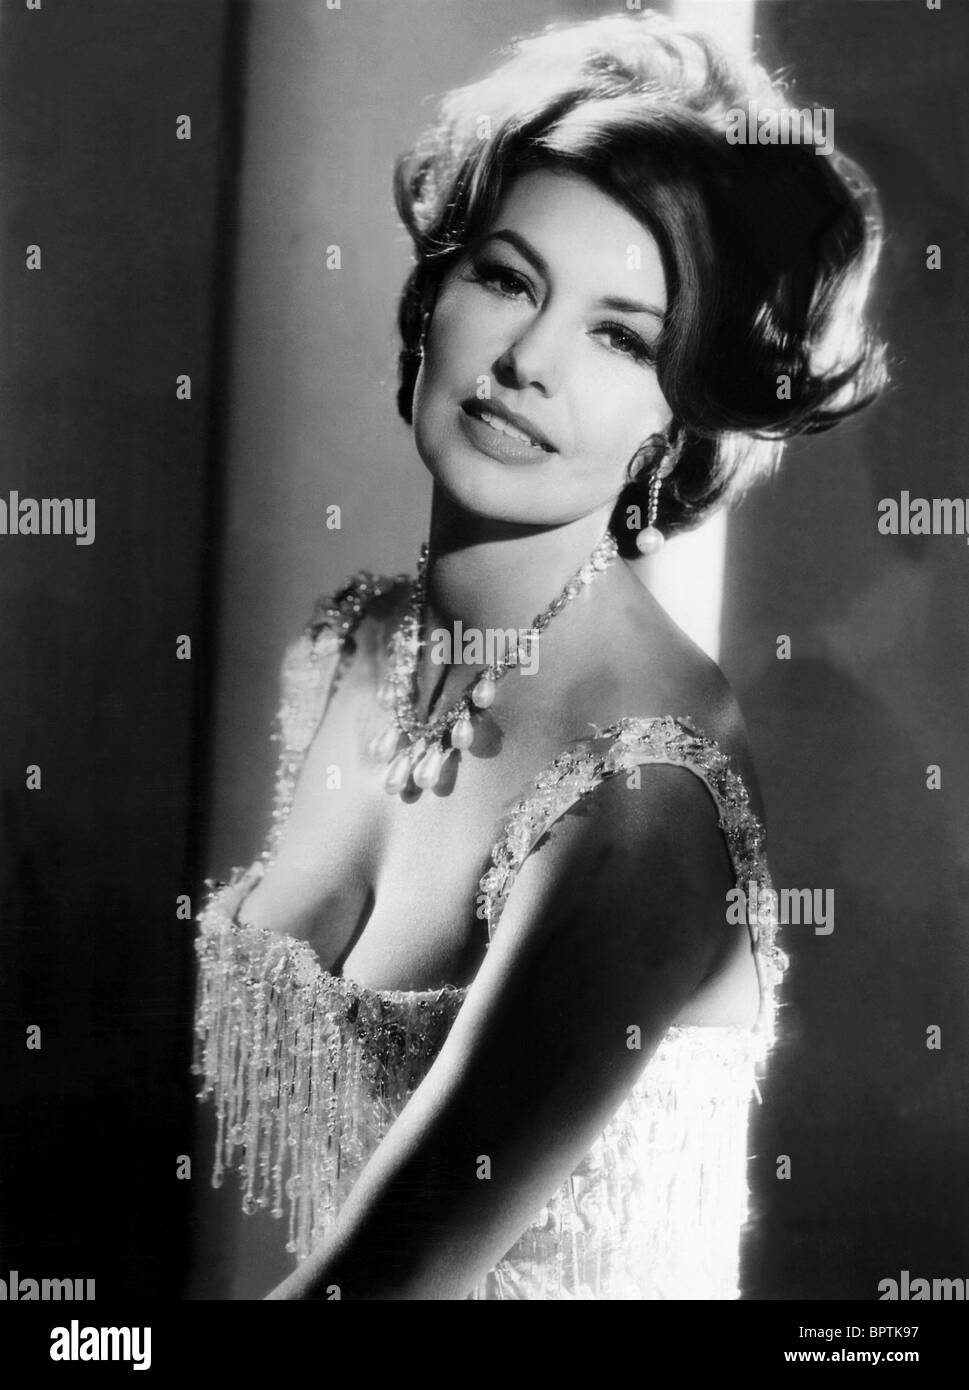 CYD CHARISSE ACTRESS DANCER 1950 Stock Photo 31274803